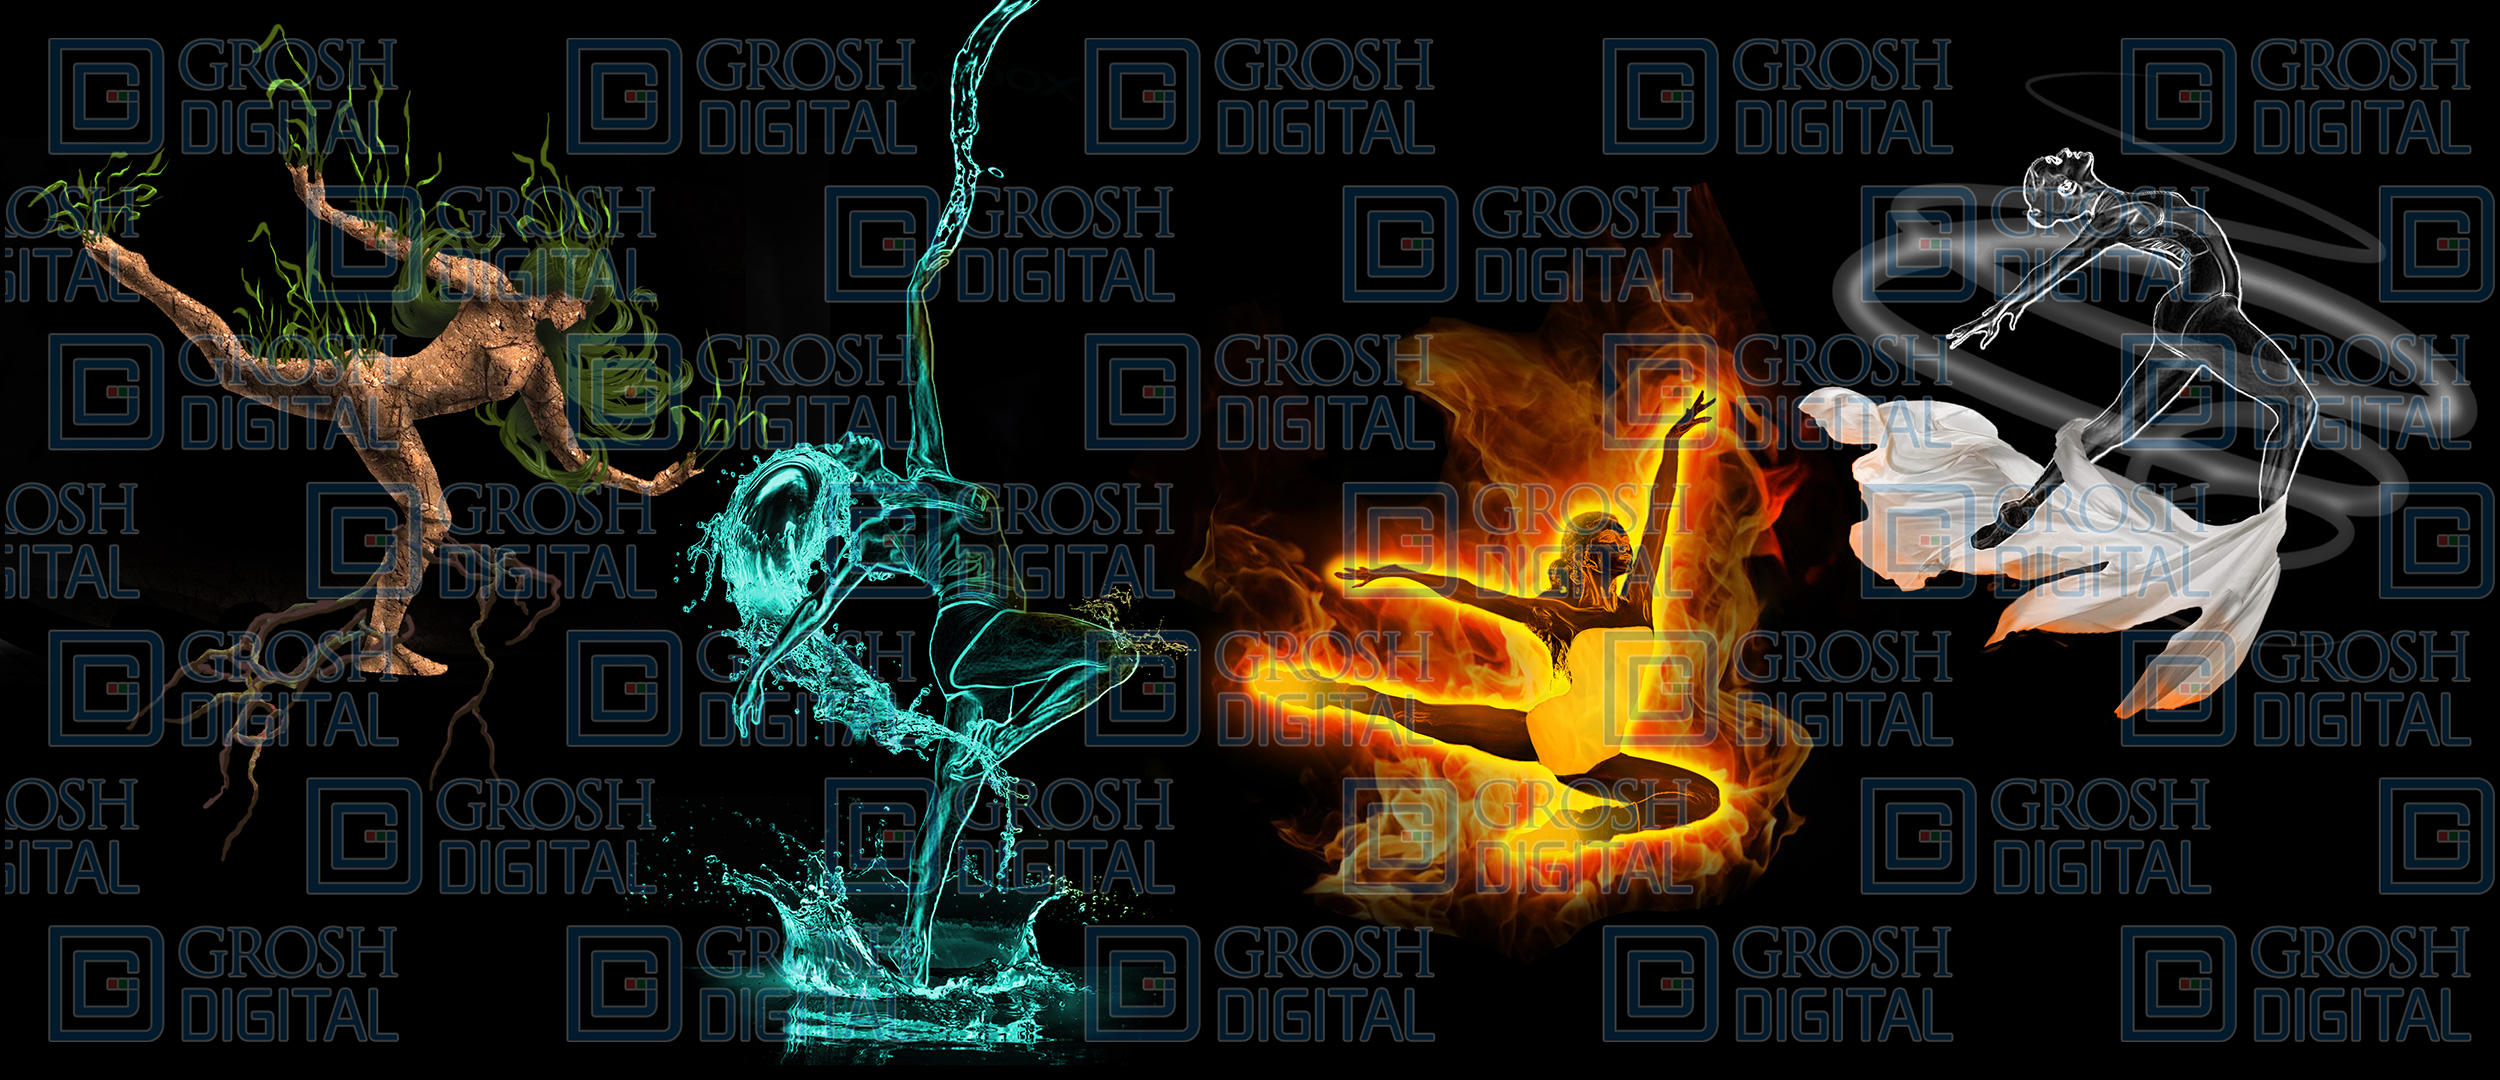 Dance elements projected backdrops grosh digital dance elements projected backdrop for abstract dance malvernweather Image collections